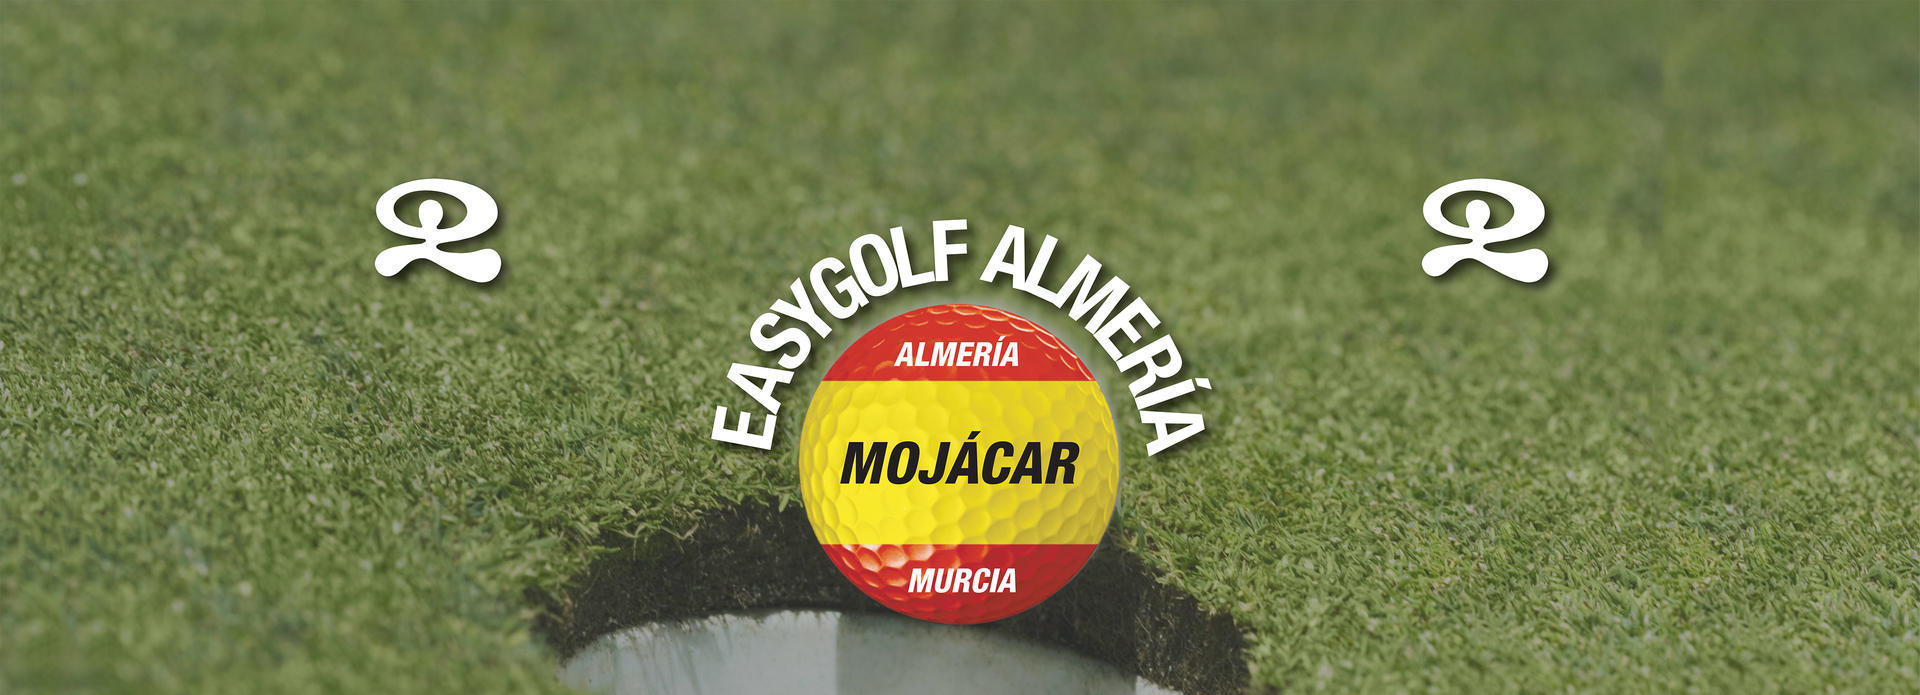 Golf Holidays in Almería and Murcia, Southern Spain